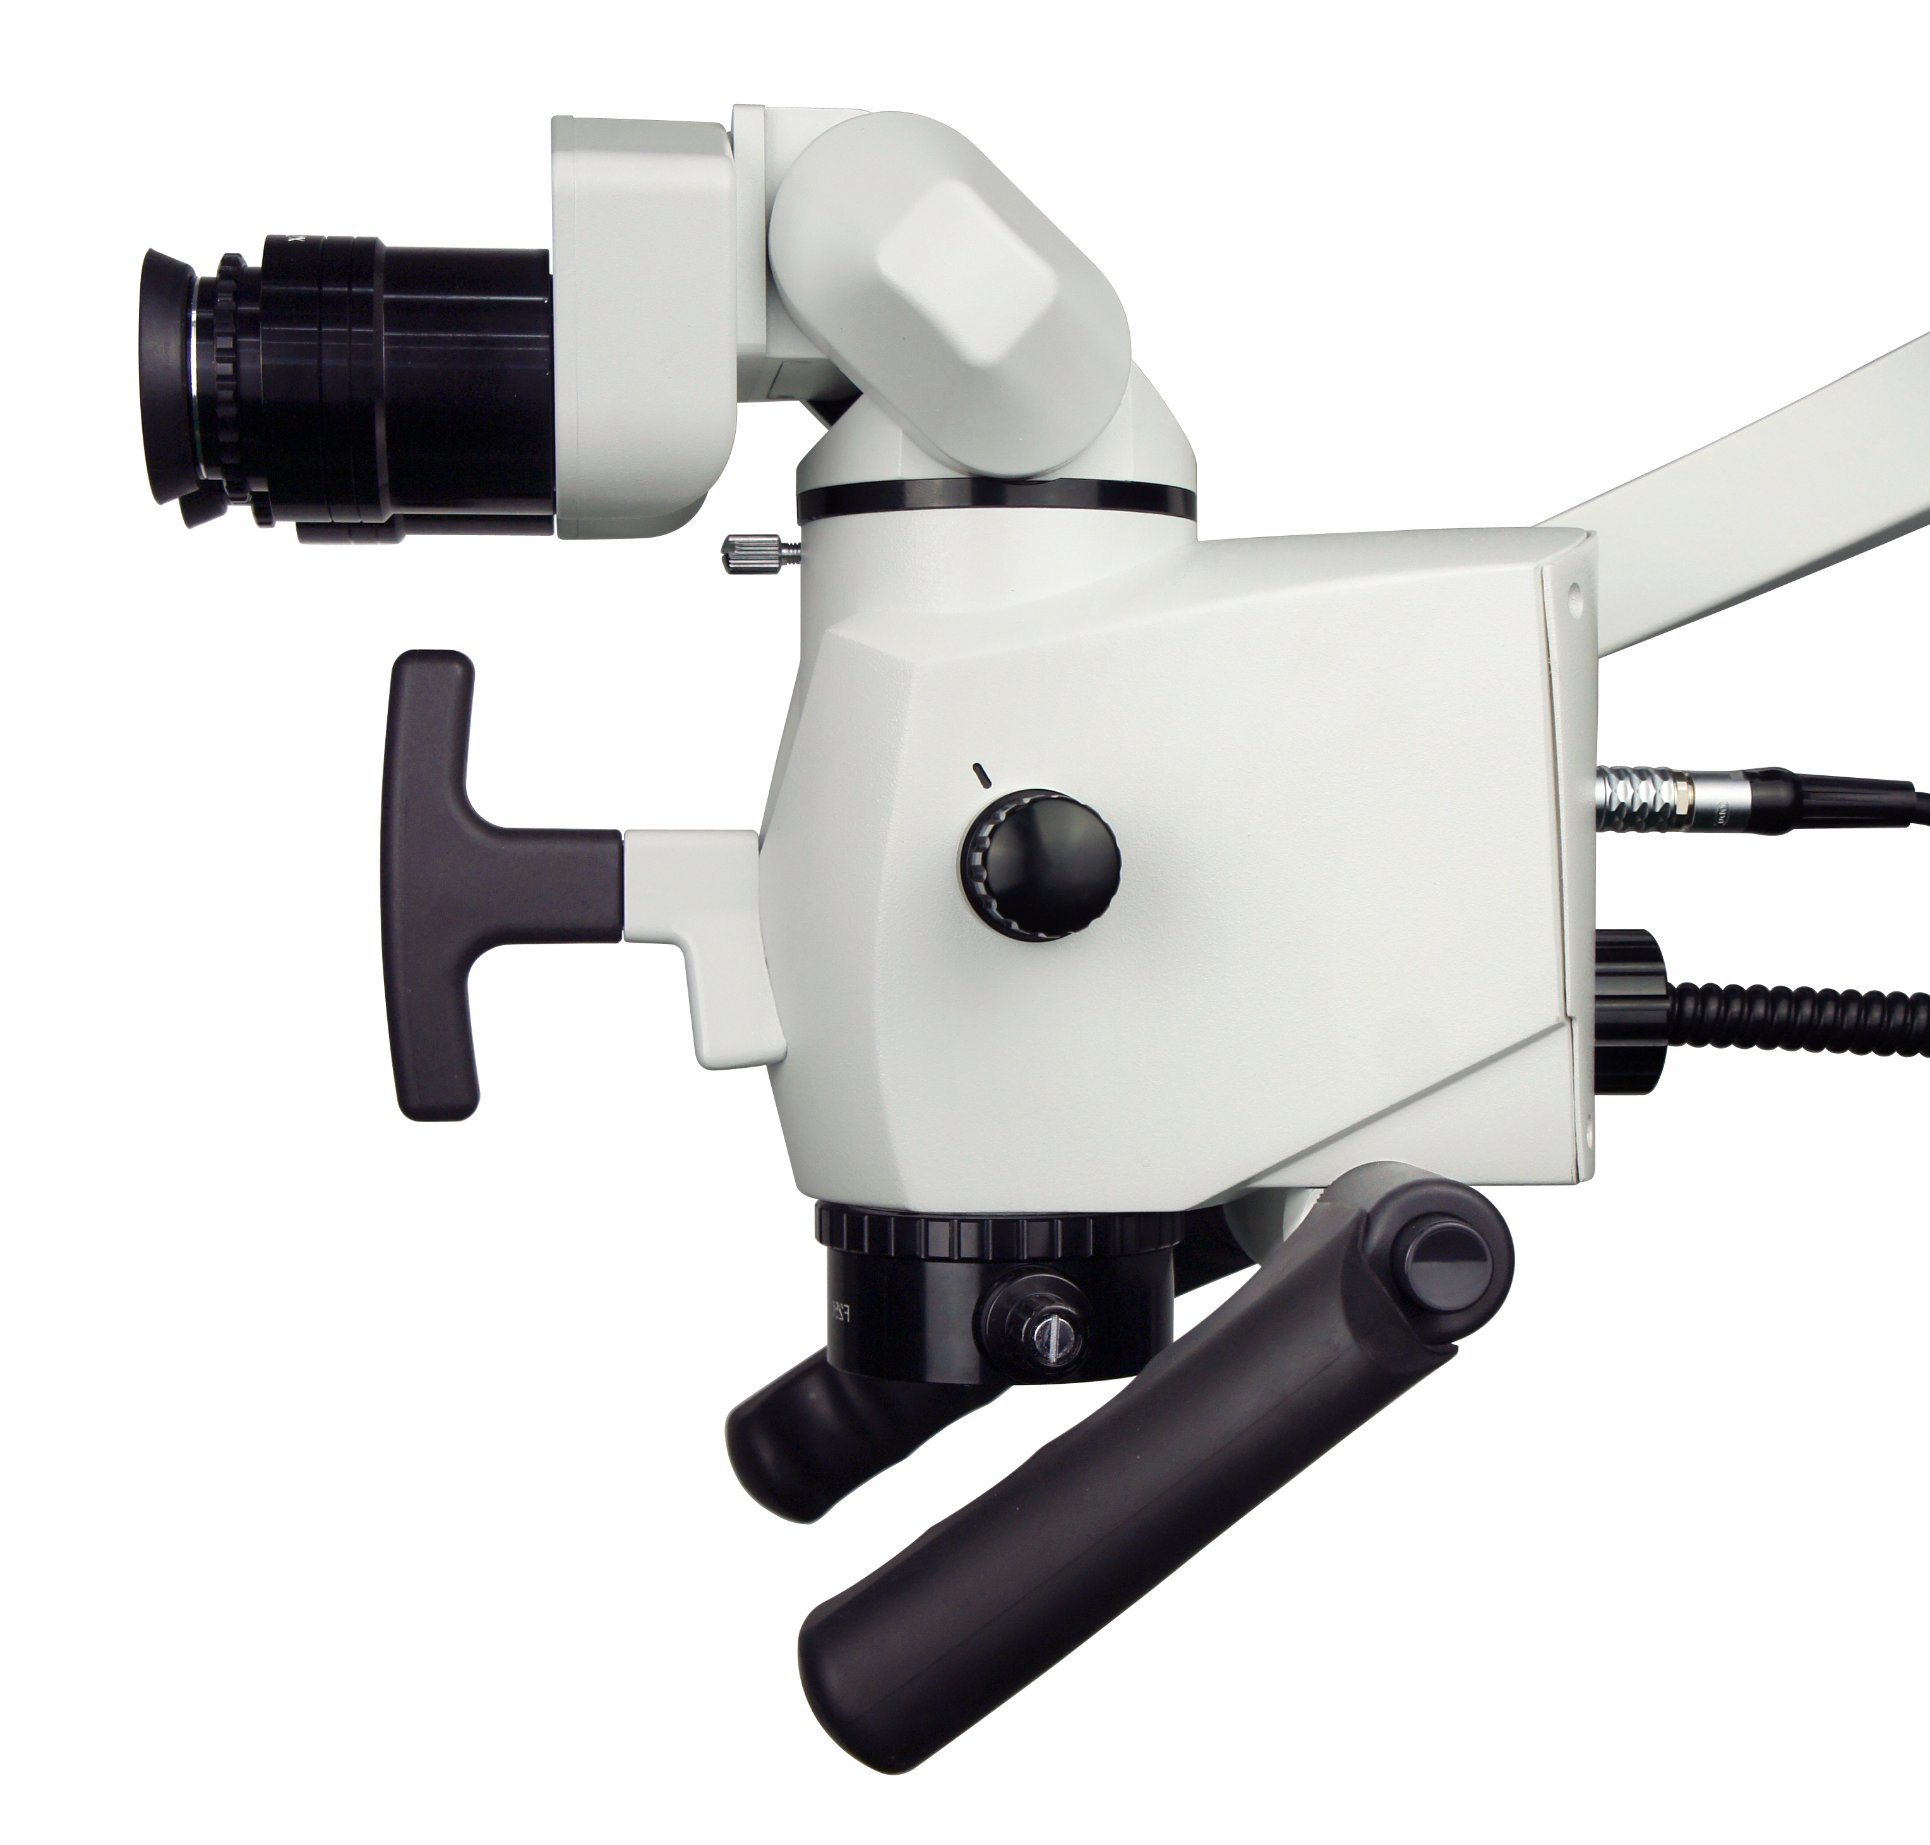 Am-3000 LED Surgical Microscope